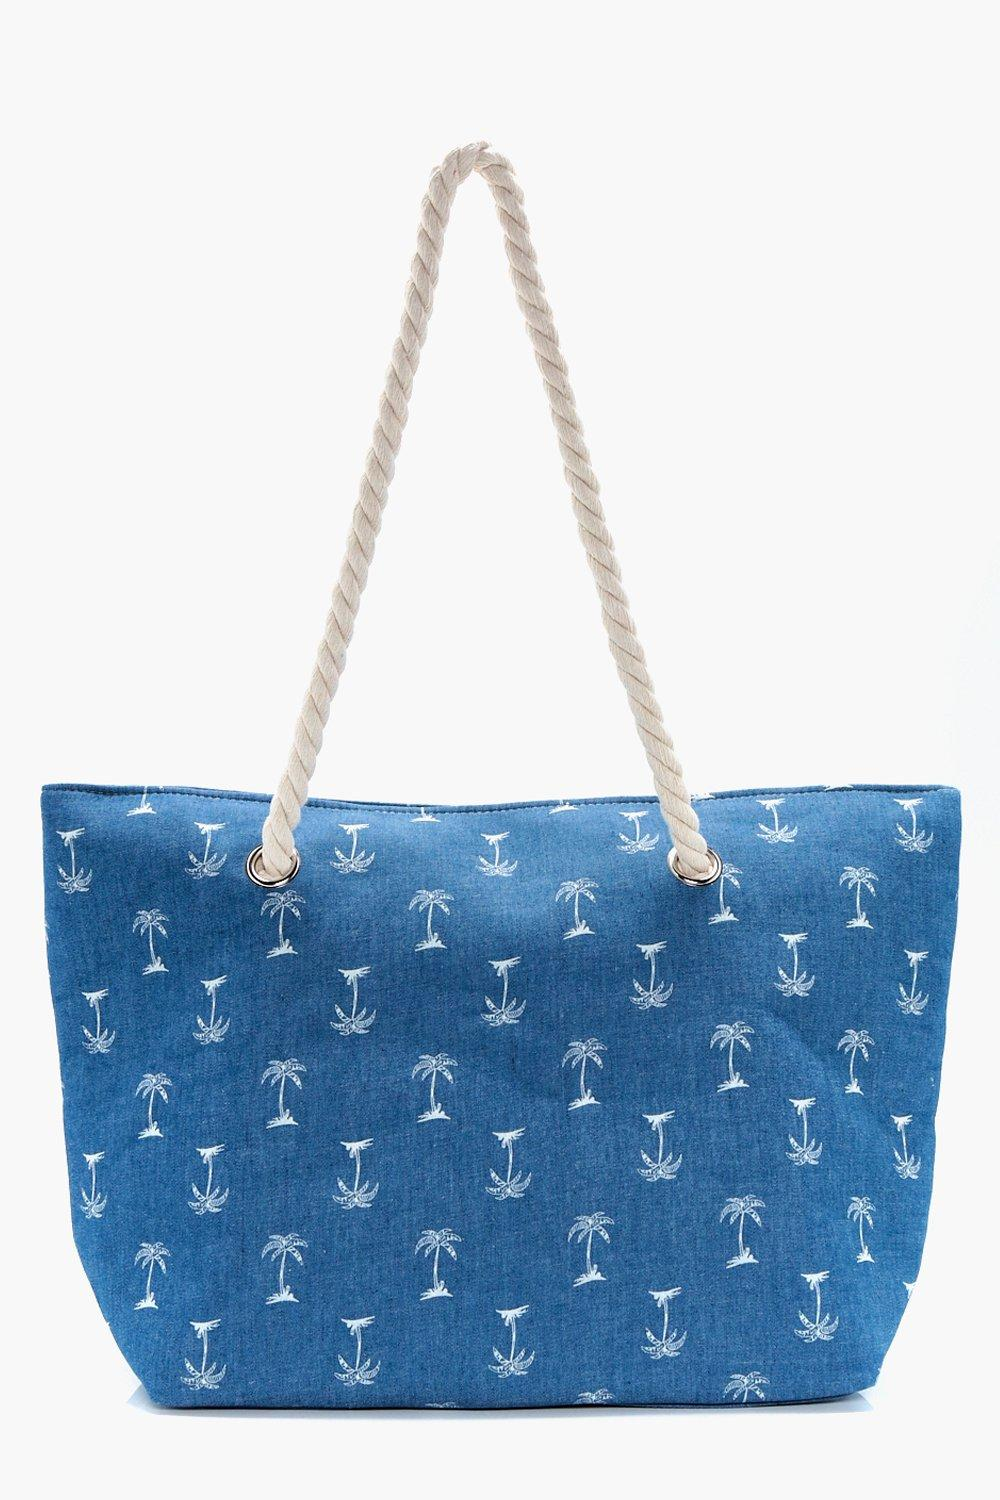 Palm Tree Beach Bag - denim-blue - Lizzie Palm Tre